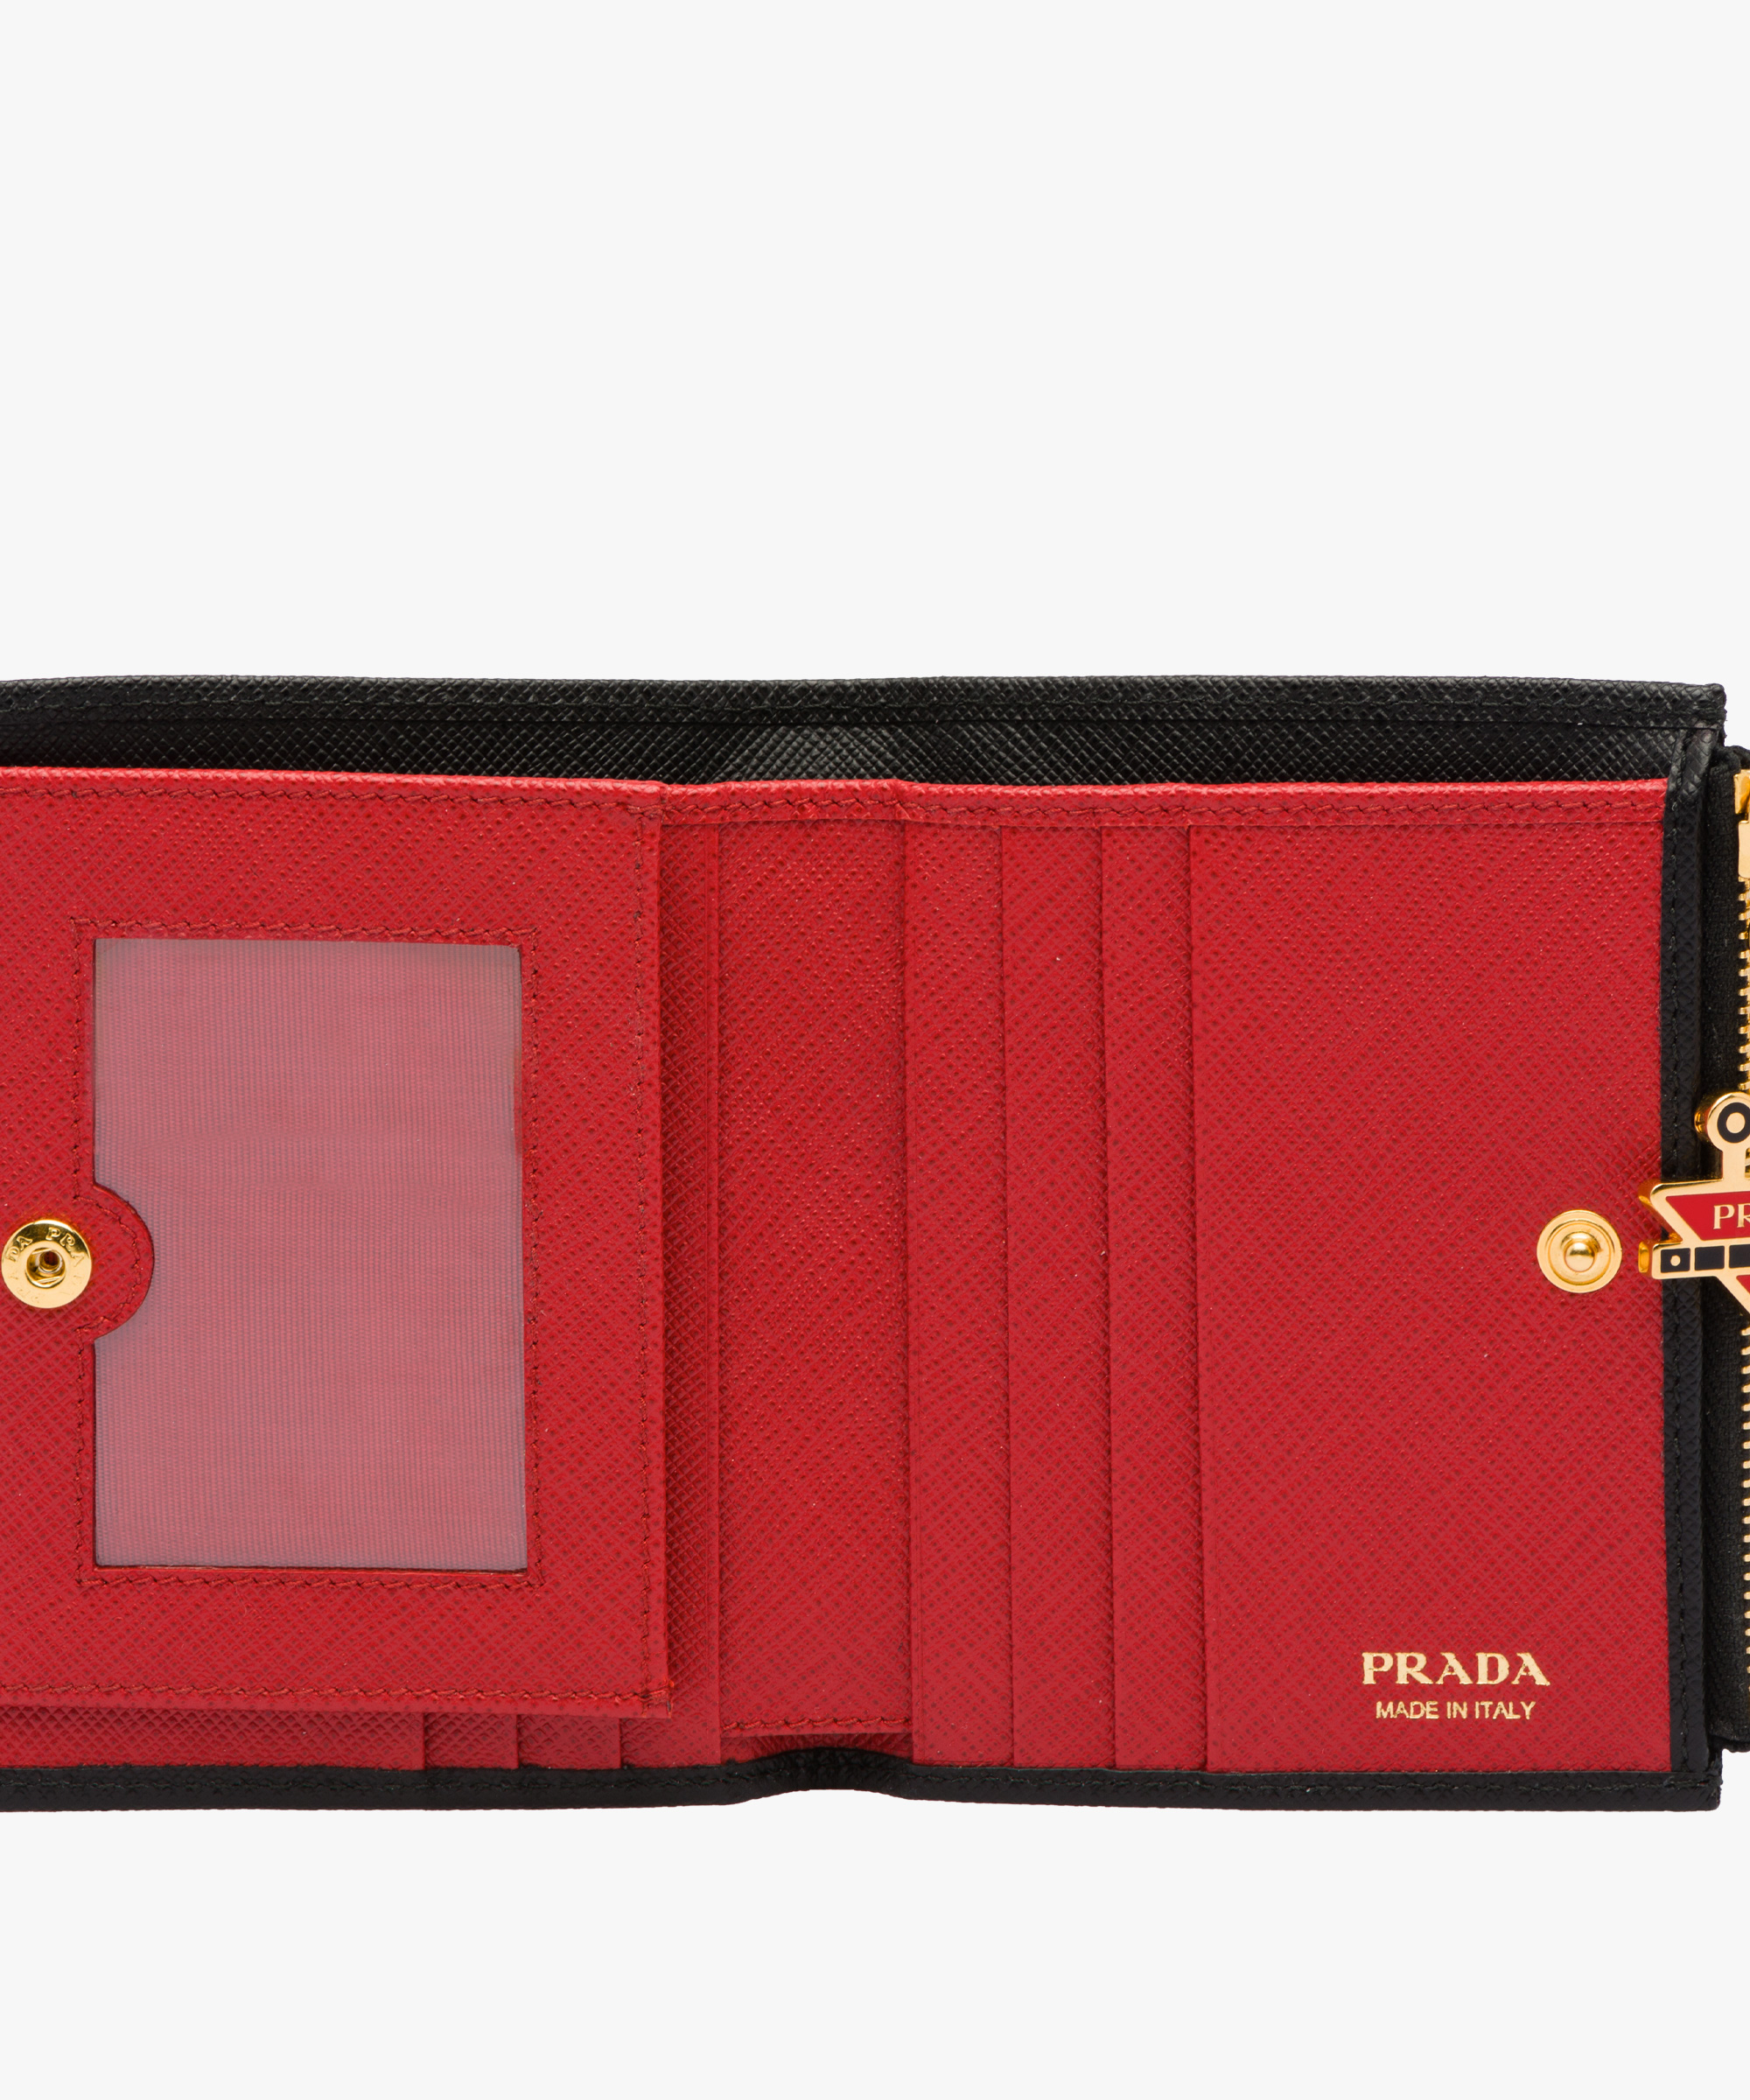 e504e0cb88a5 greece discount code for small saffiano leather wallet prada black fire  engine red b58fe d3ea6 93a65